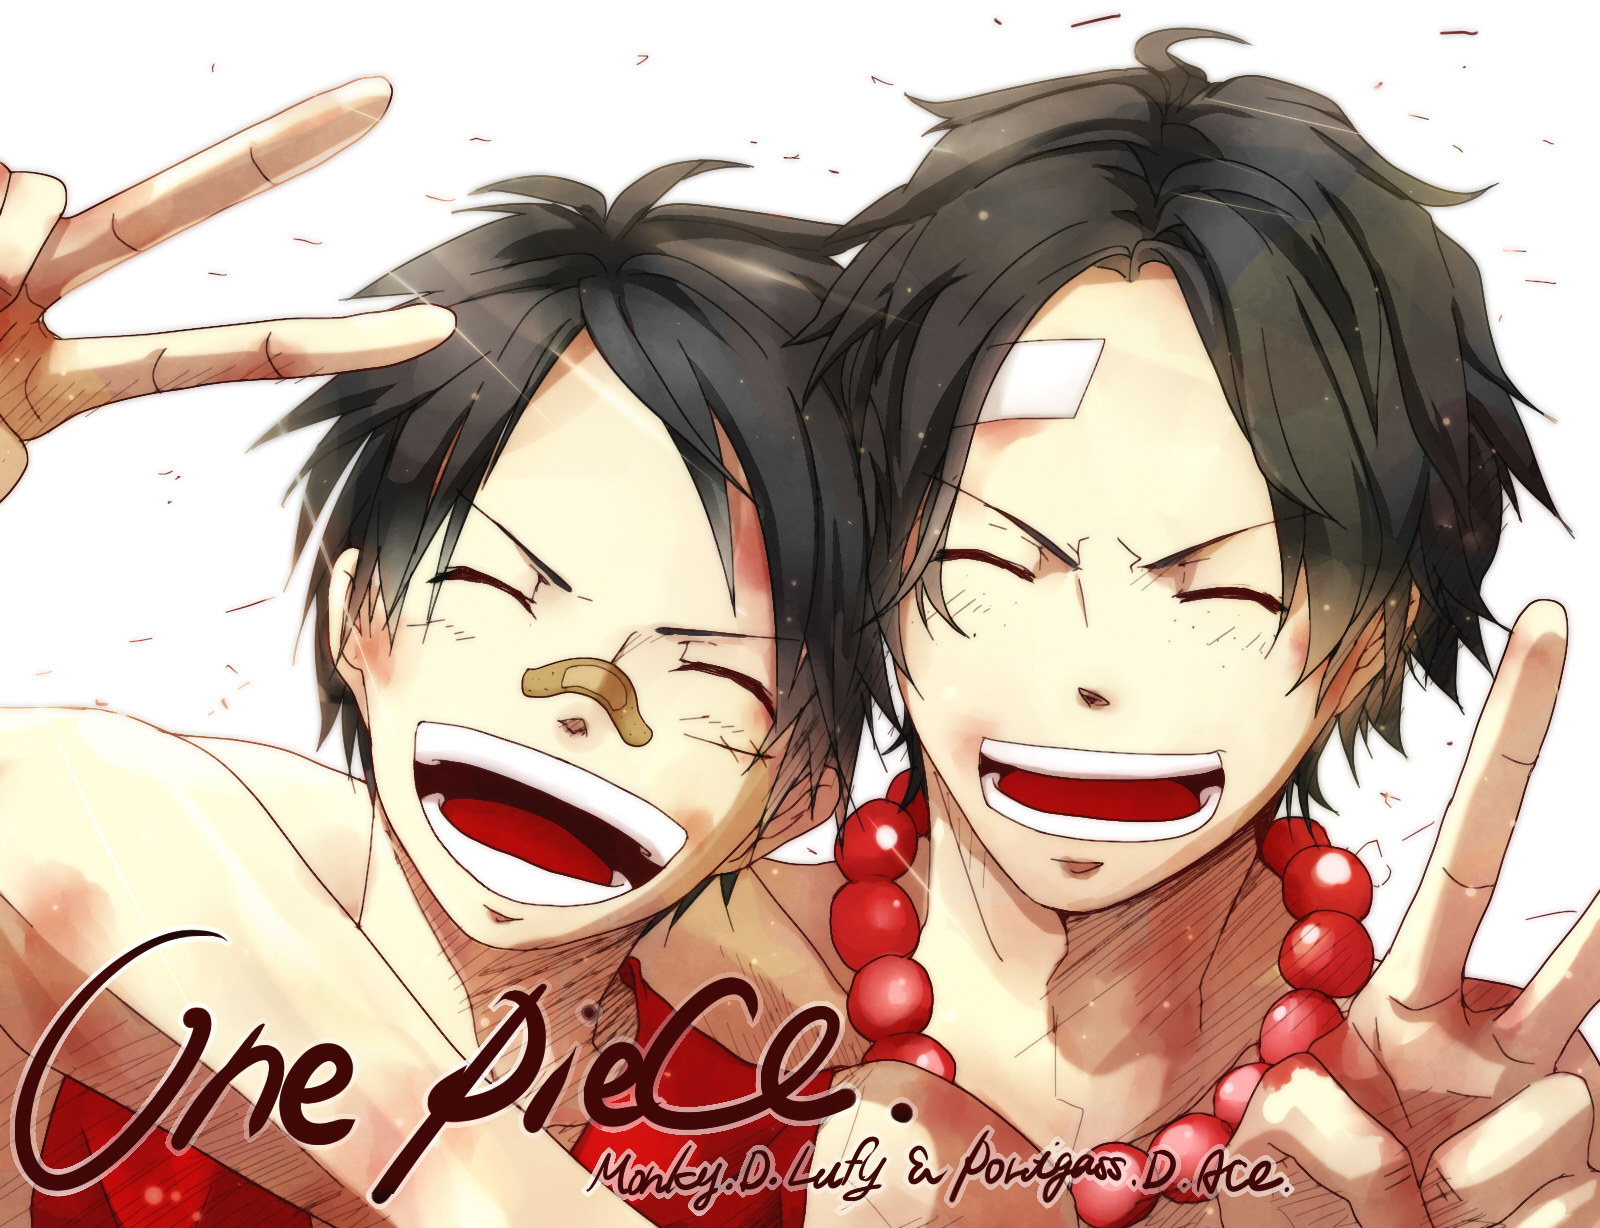 D. Brothers - ONE PIECE - Image #295716 - Zerochan Anime ...